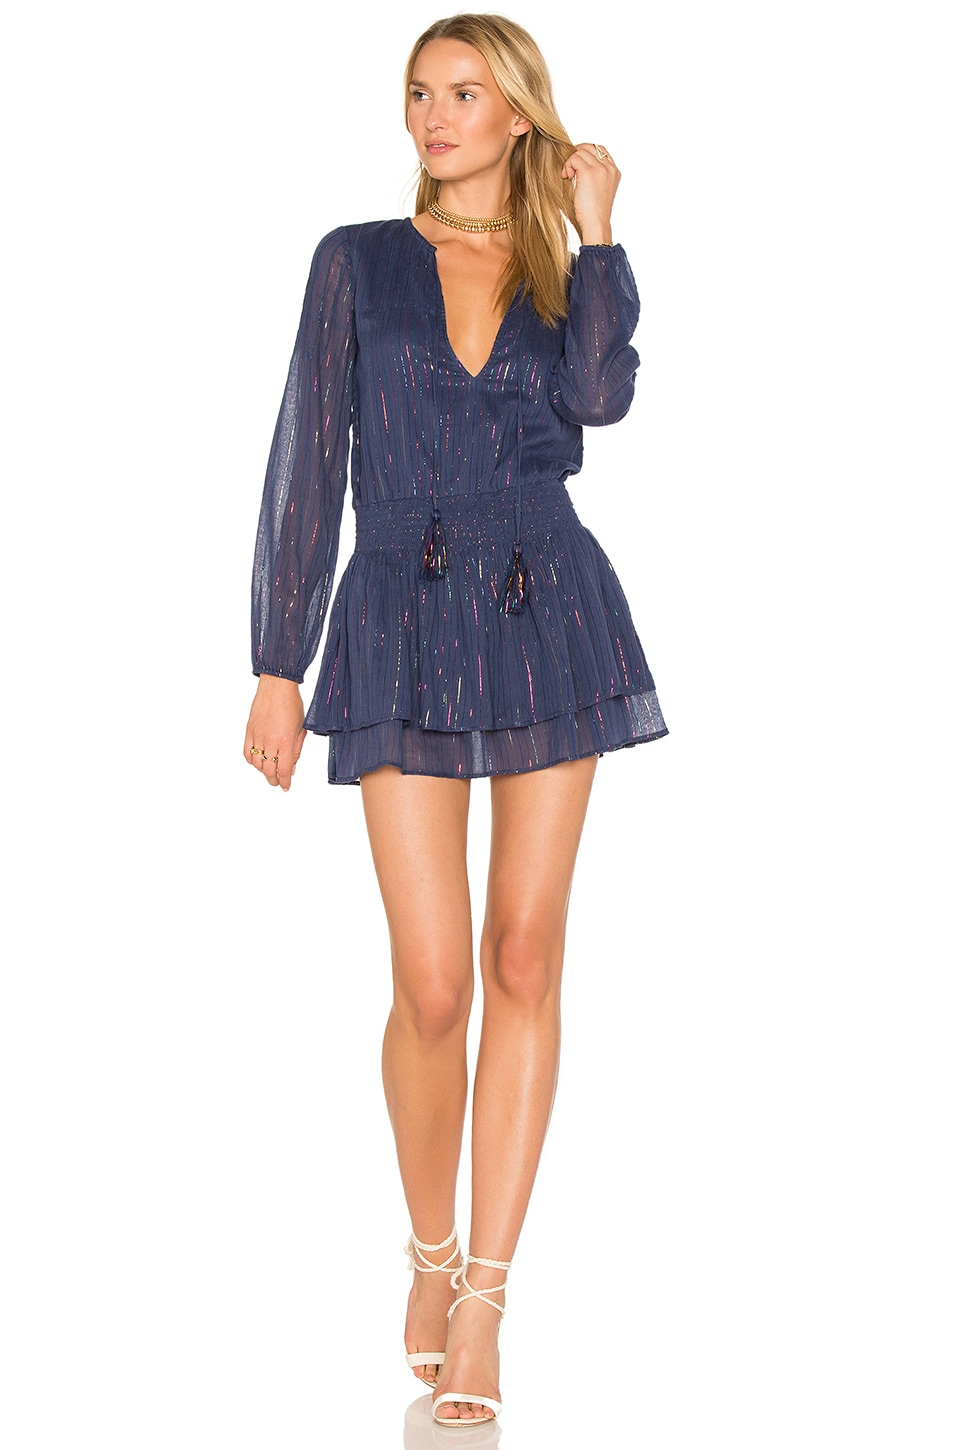 MAJORELLE Teresa Dress in Navy Prism